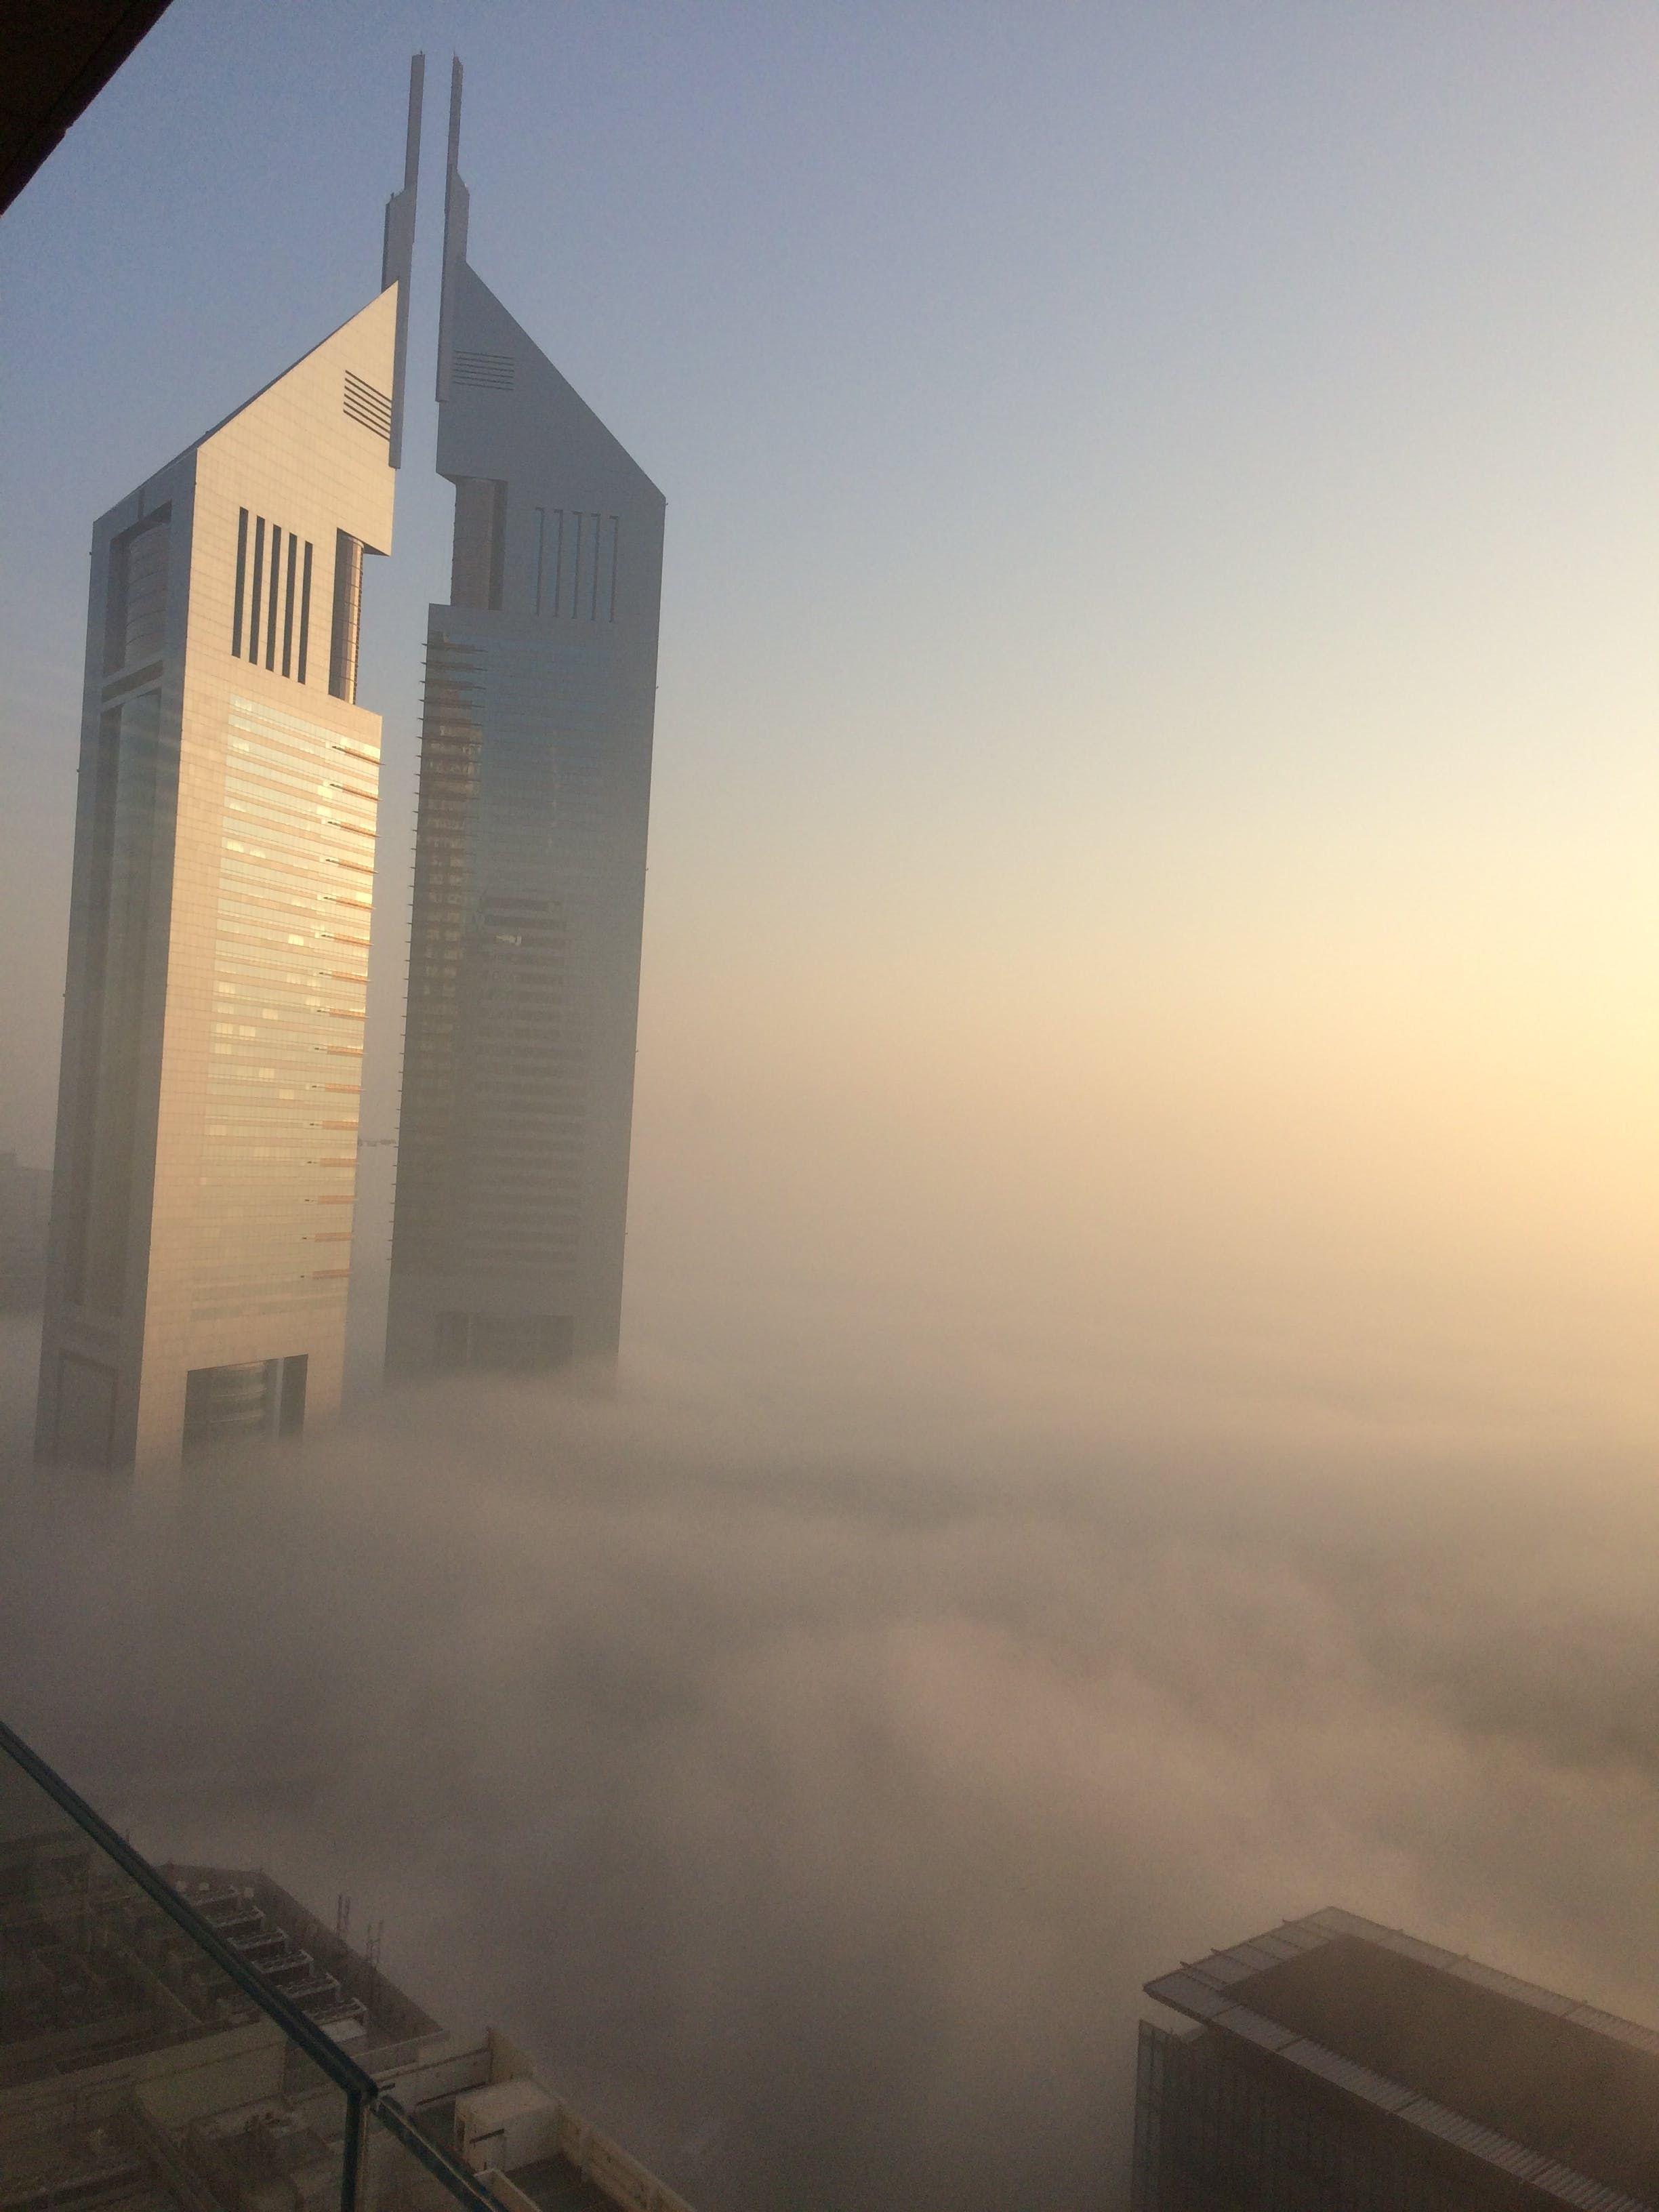 Free stock photo of Emirate tower blanketed with fog Dubai